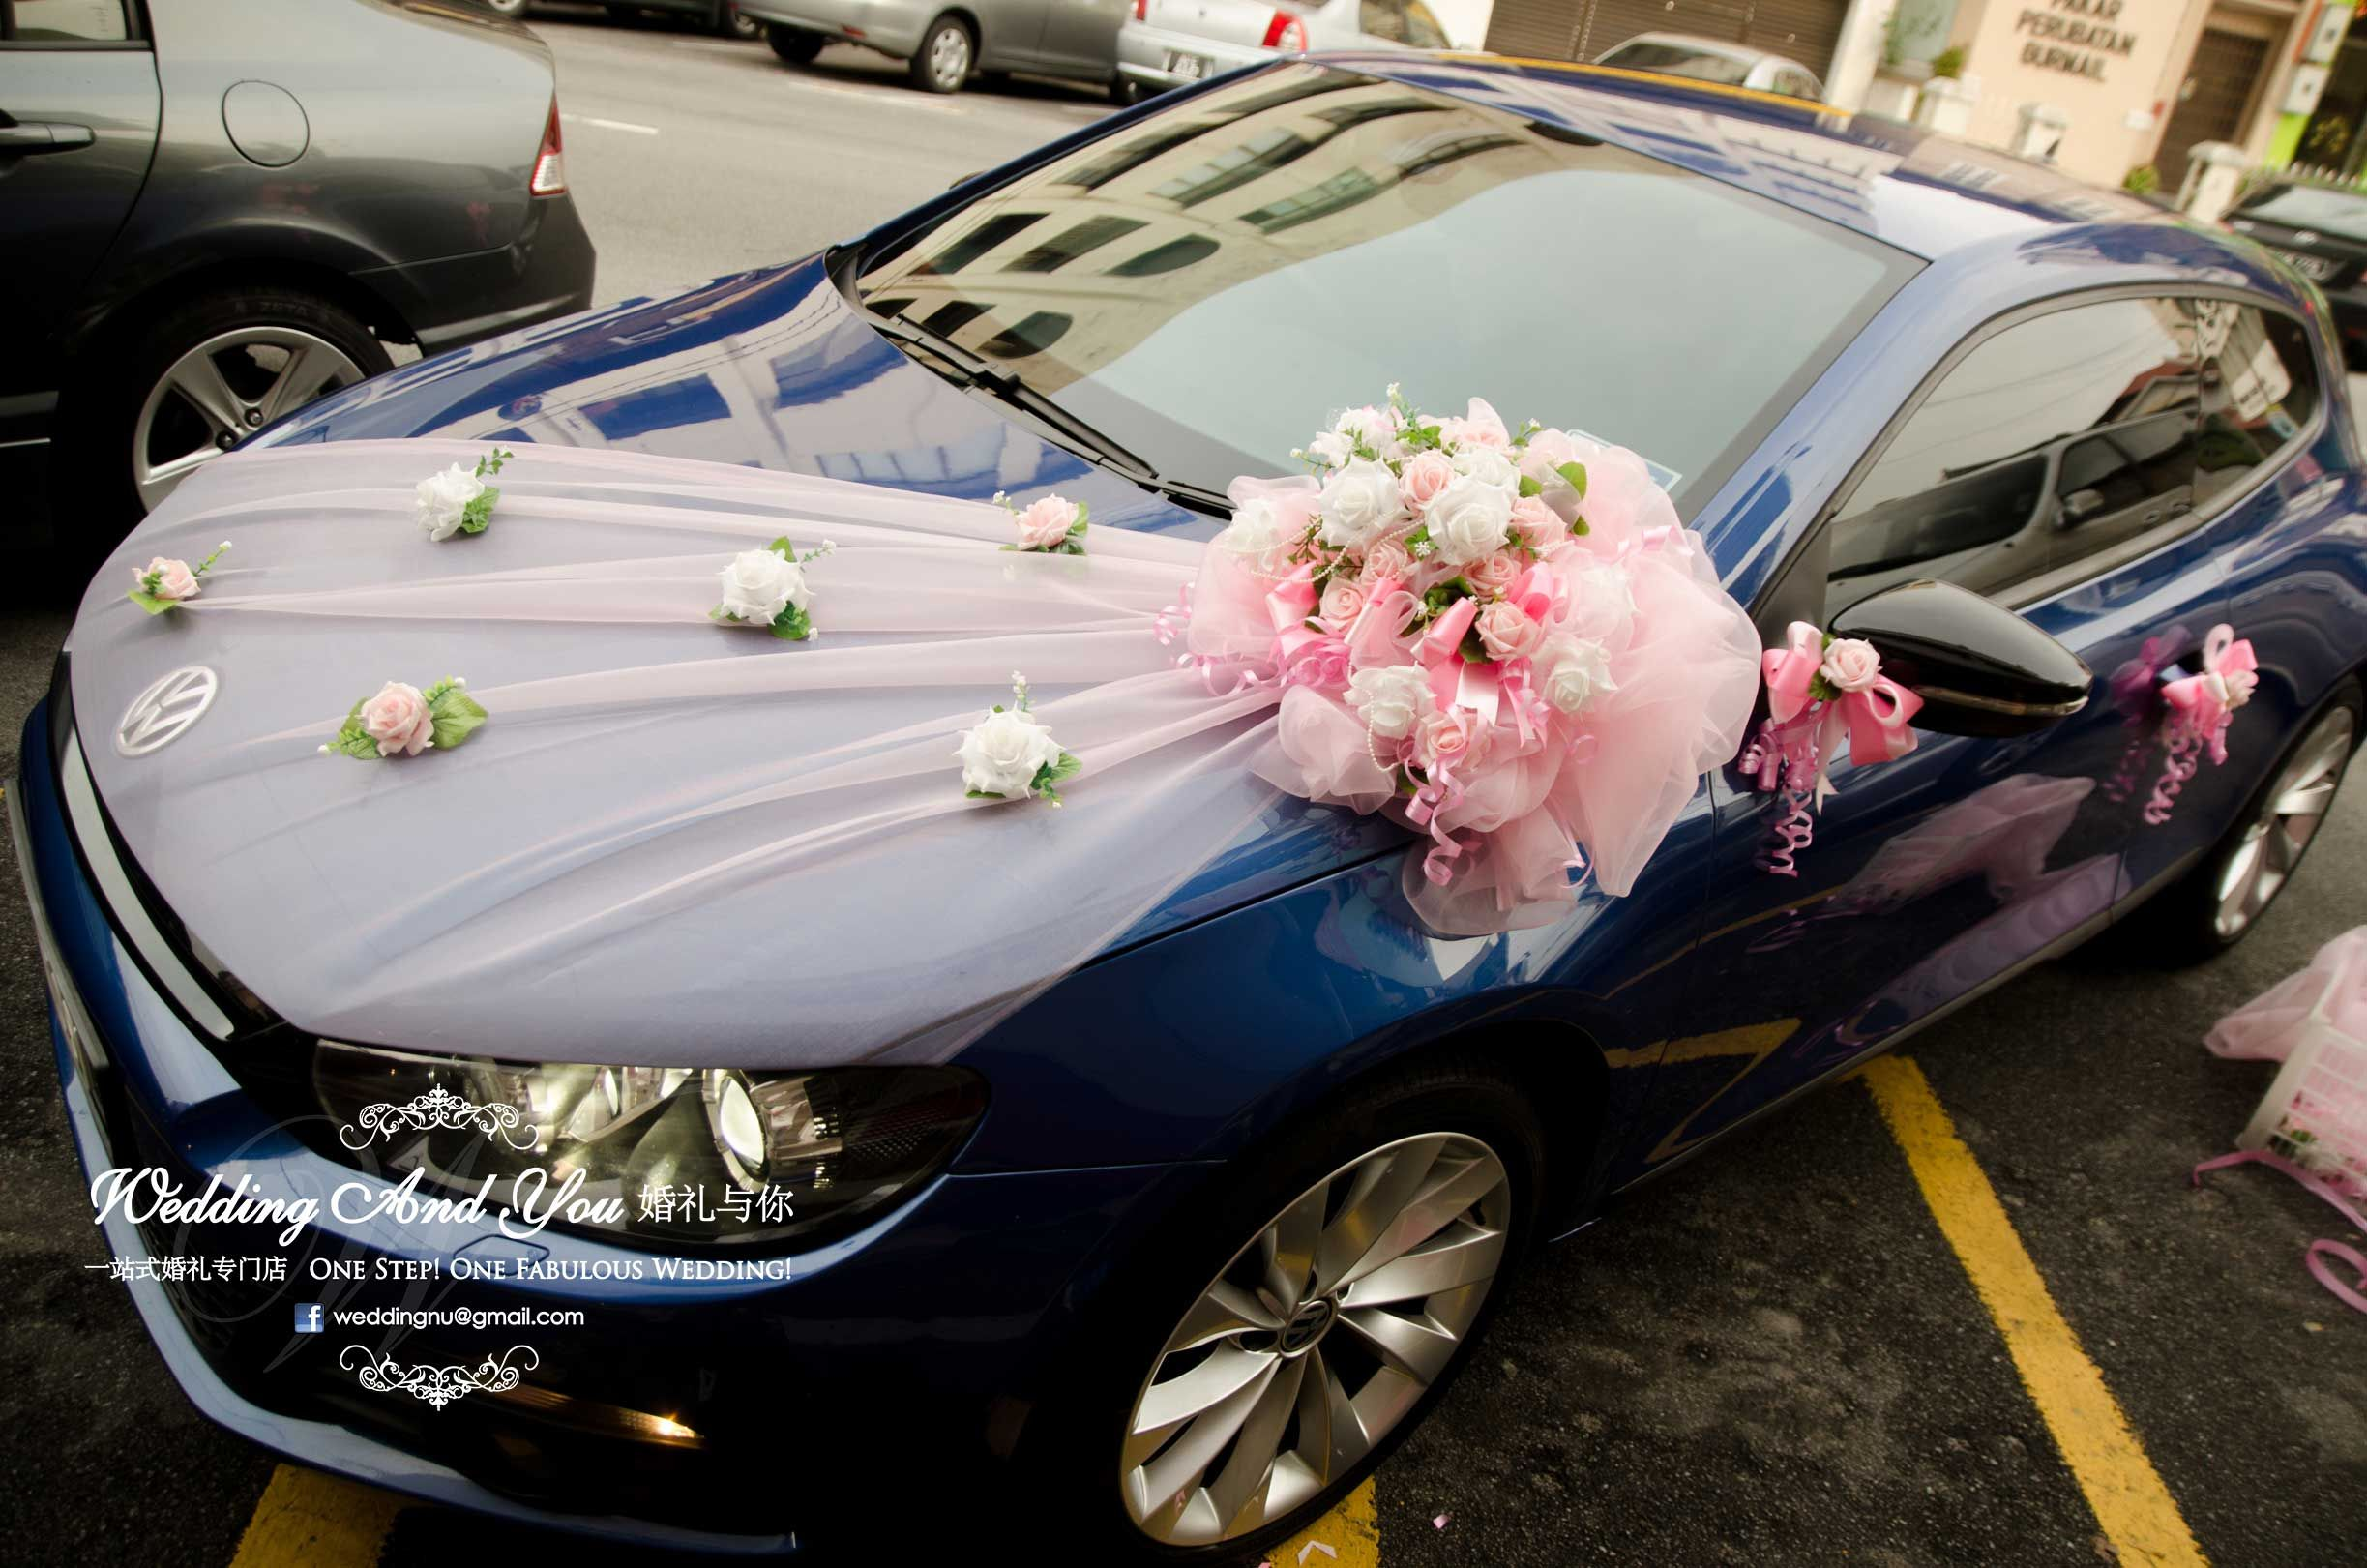 Wedding car decoration google zoeken wedding deco pinterest wedding car decoration google zoeken junglespirit Choice Image